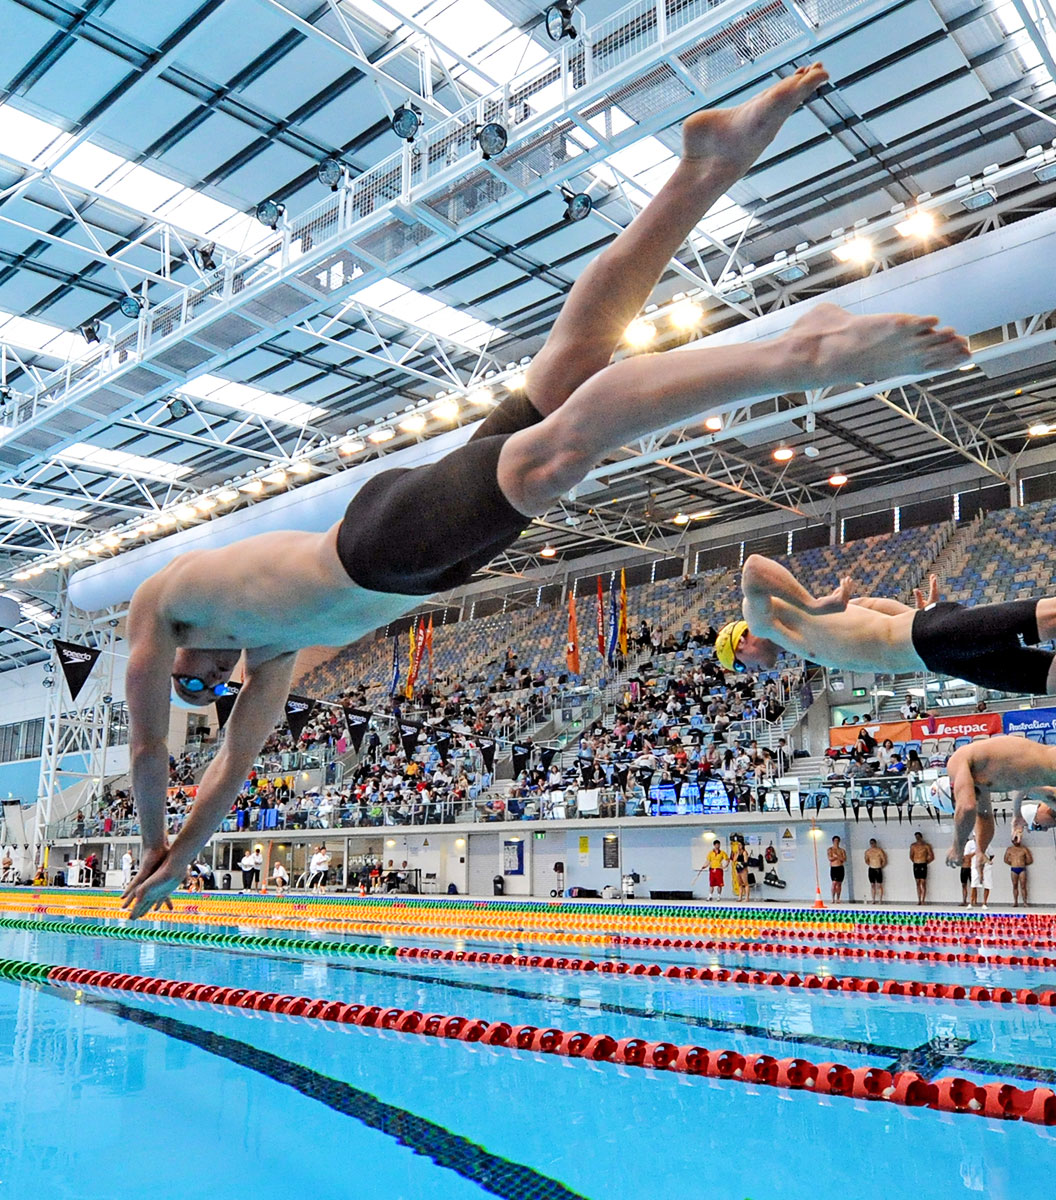 The Australian Pool Rescue Championships in Adelaide